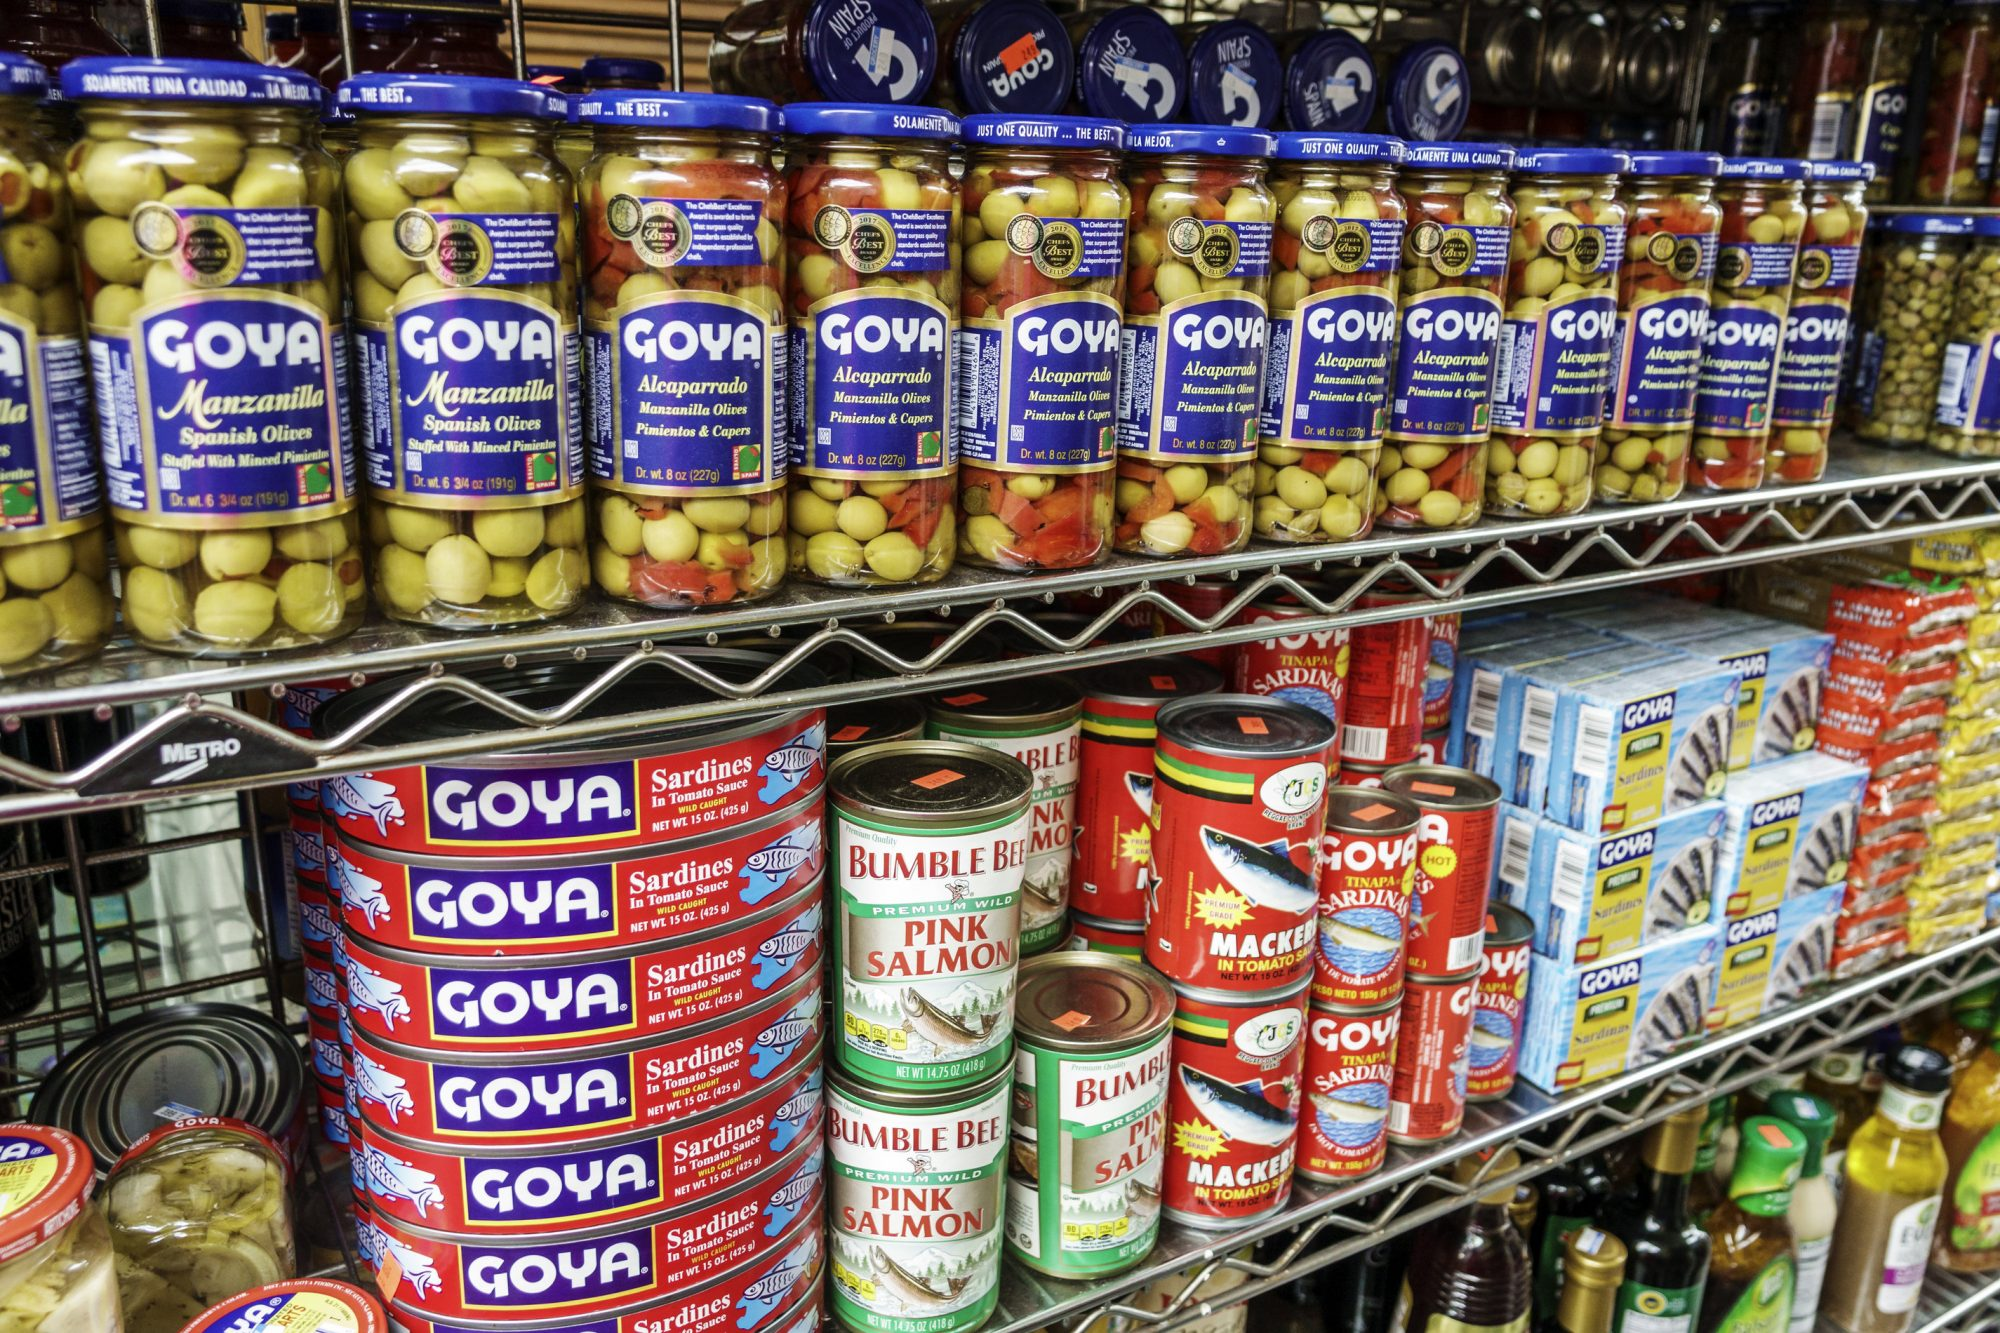 Goyaway: Why Some People Are Boycotting Goya Foods | Food & Wine